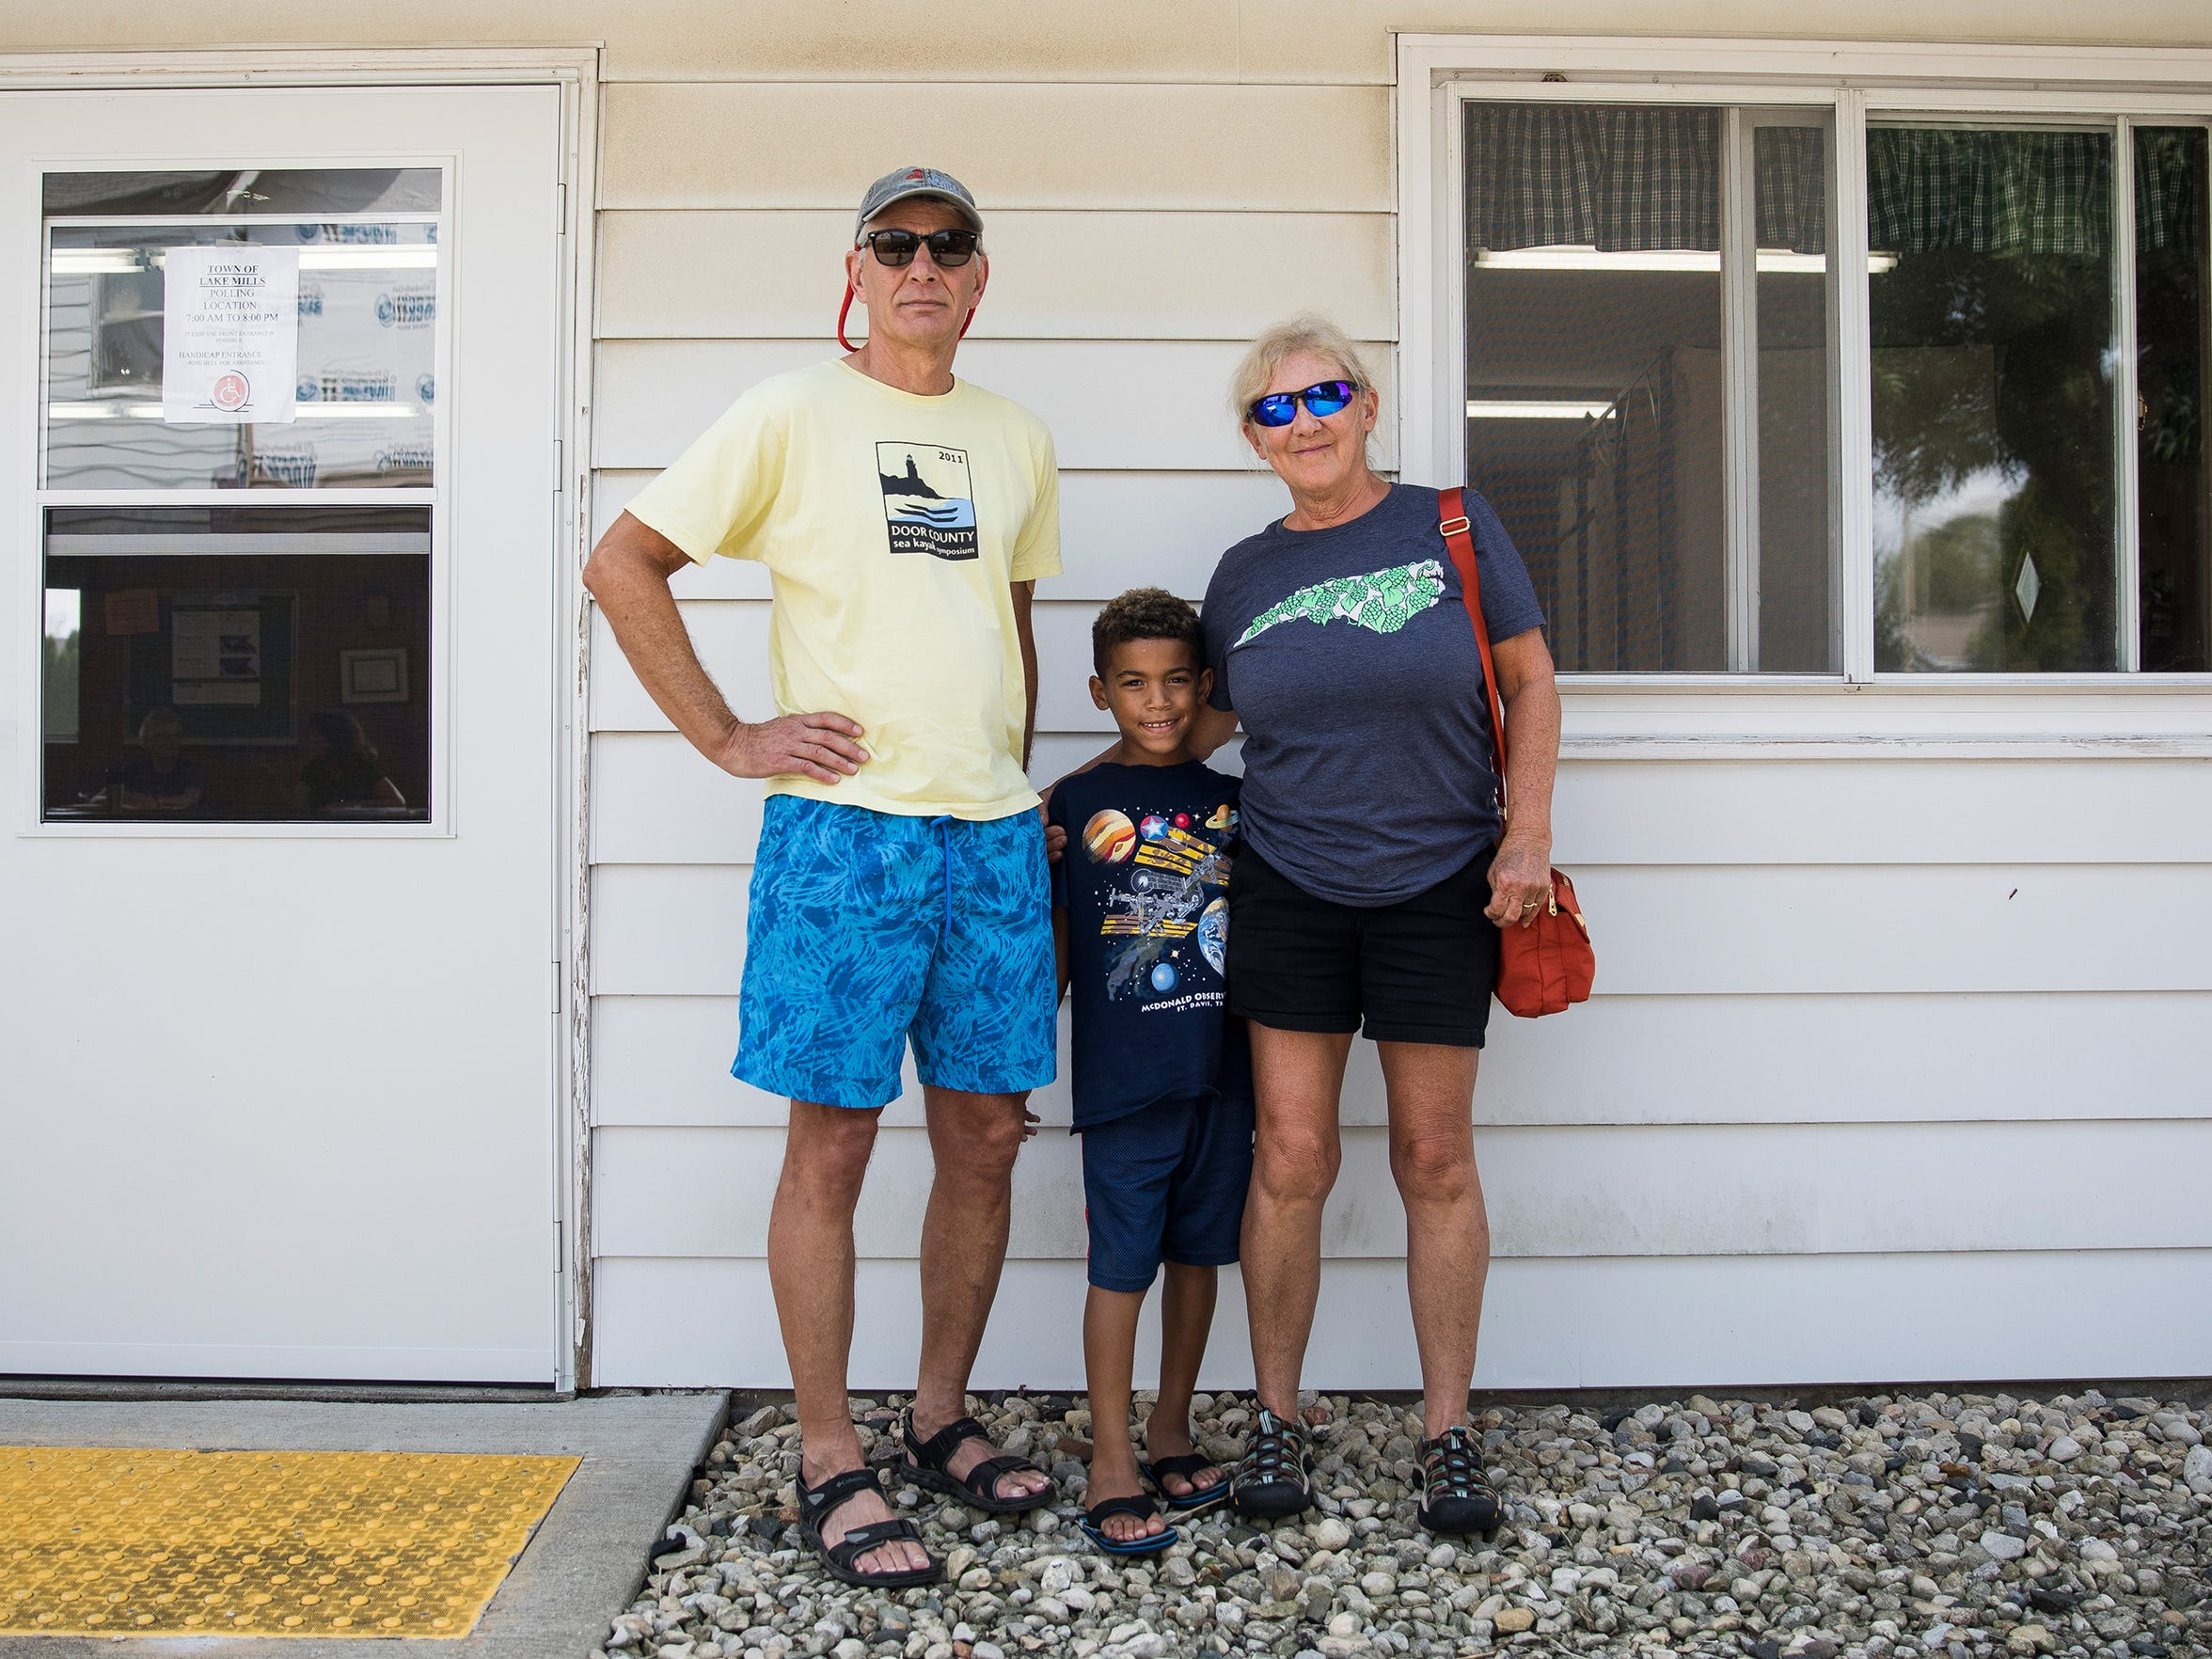 Gail and Mike Juszczak, seen with their grandson, Cameron